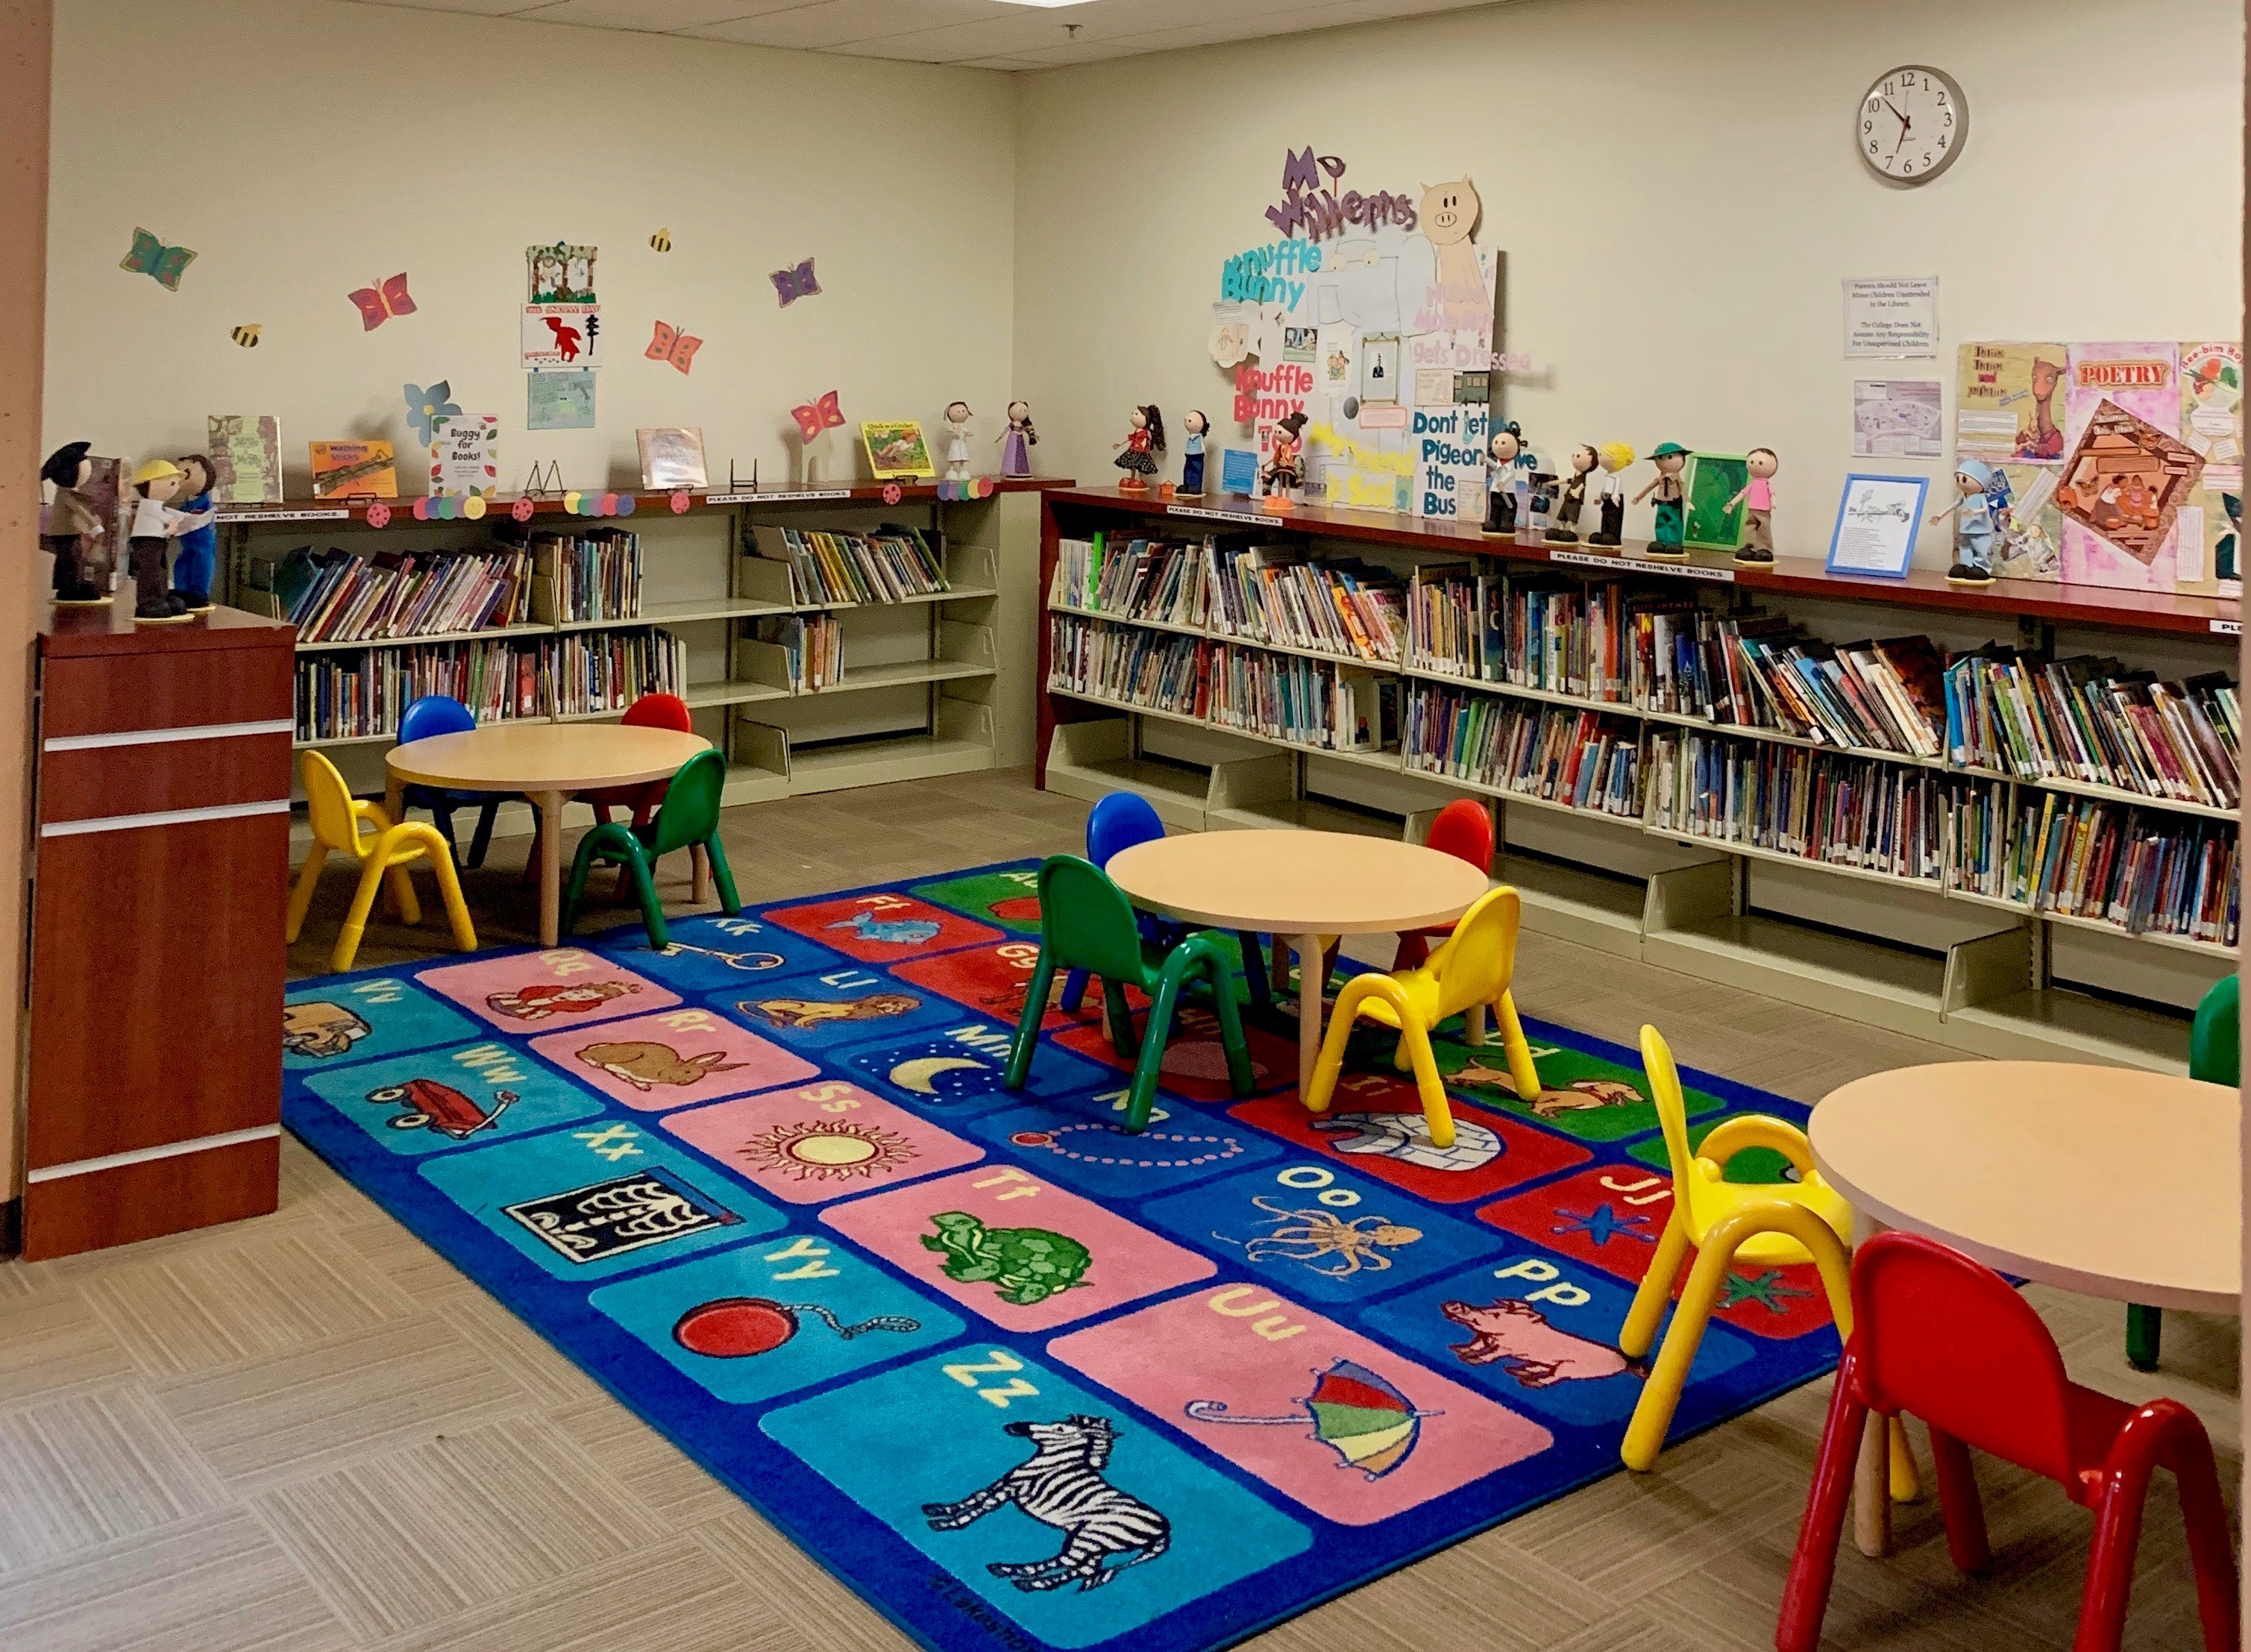 Wide-angle view of children's area of library